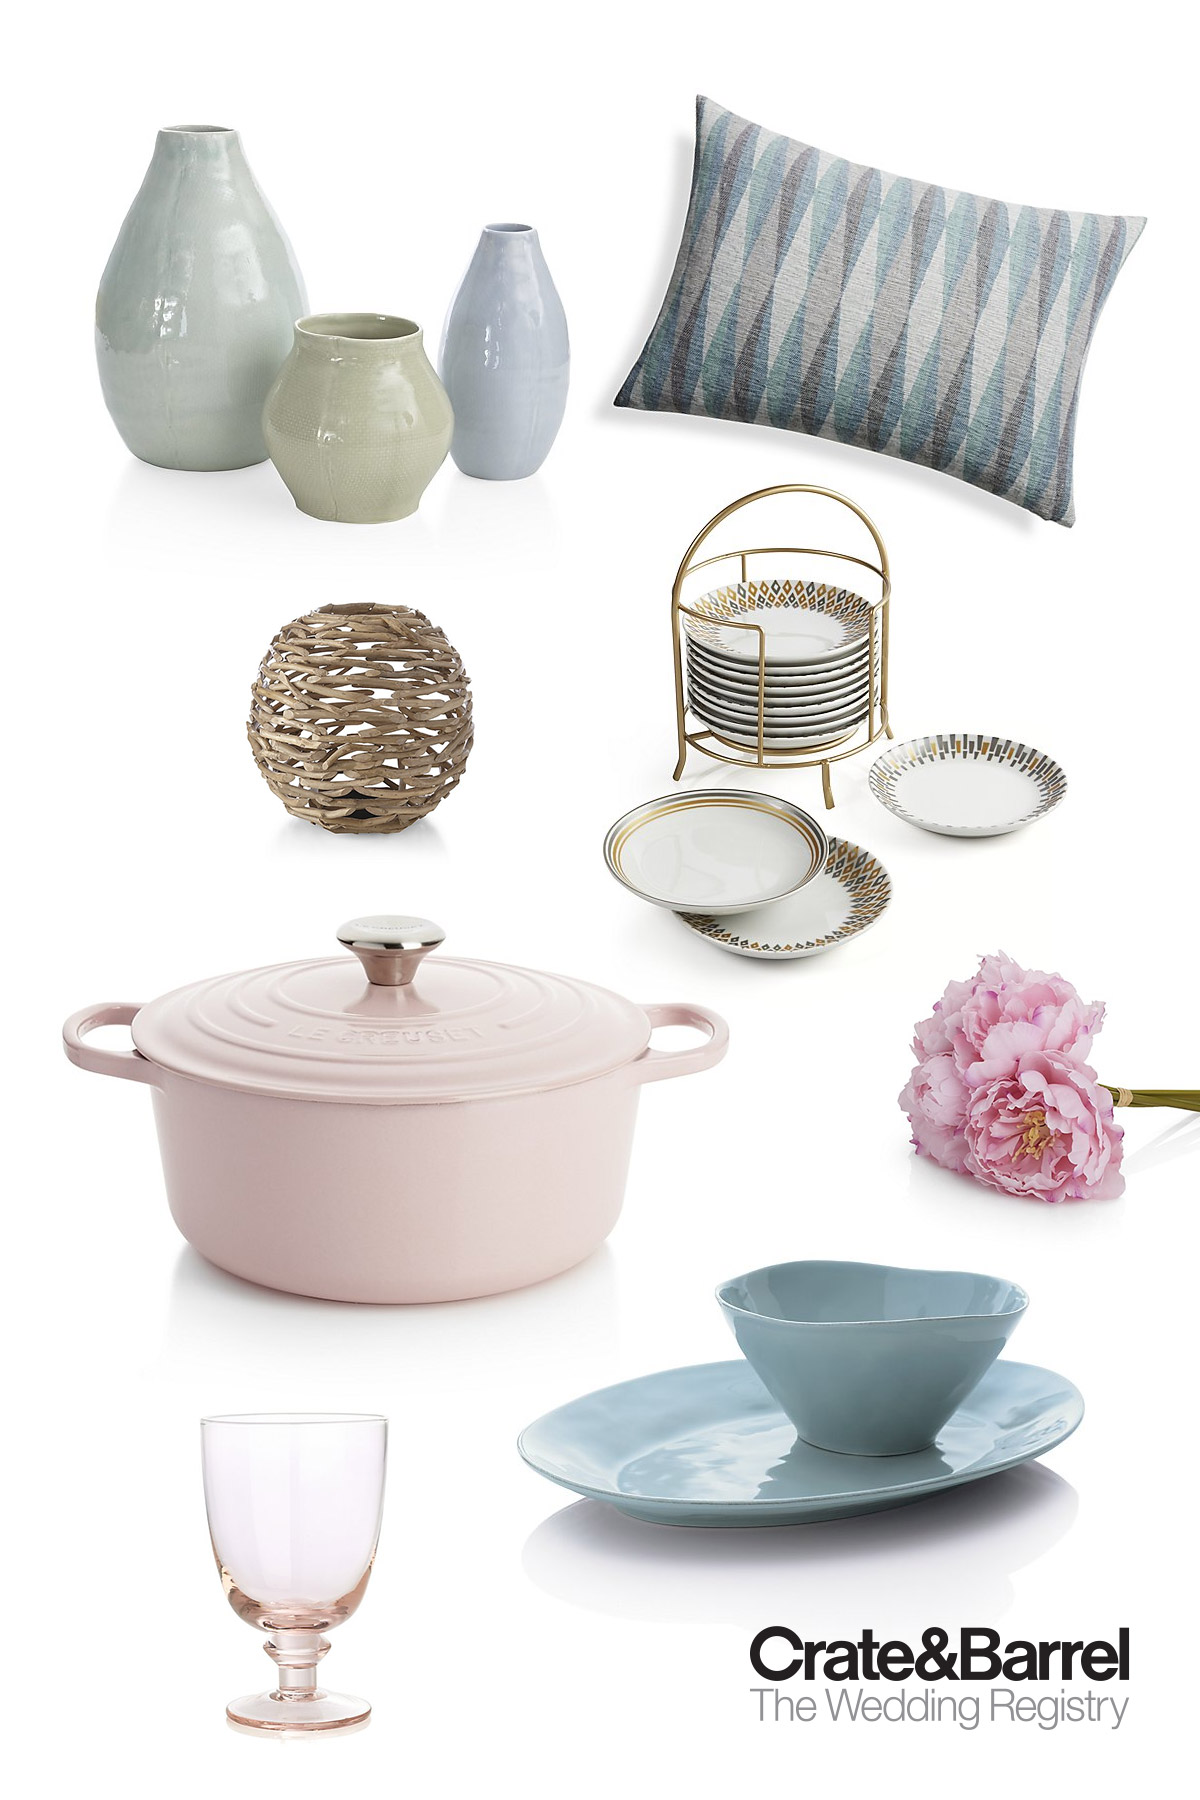 crate and barrel wedding registry 2017 pastel pink blue rose quartz serenity gifts